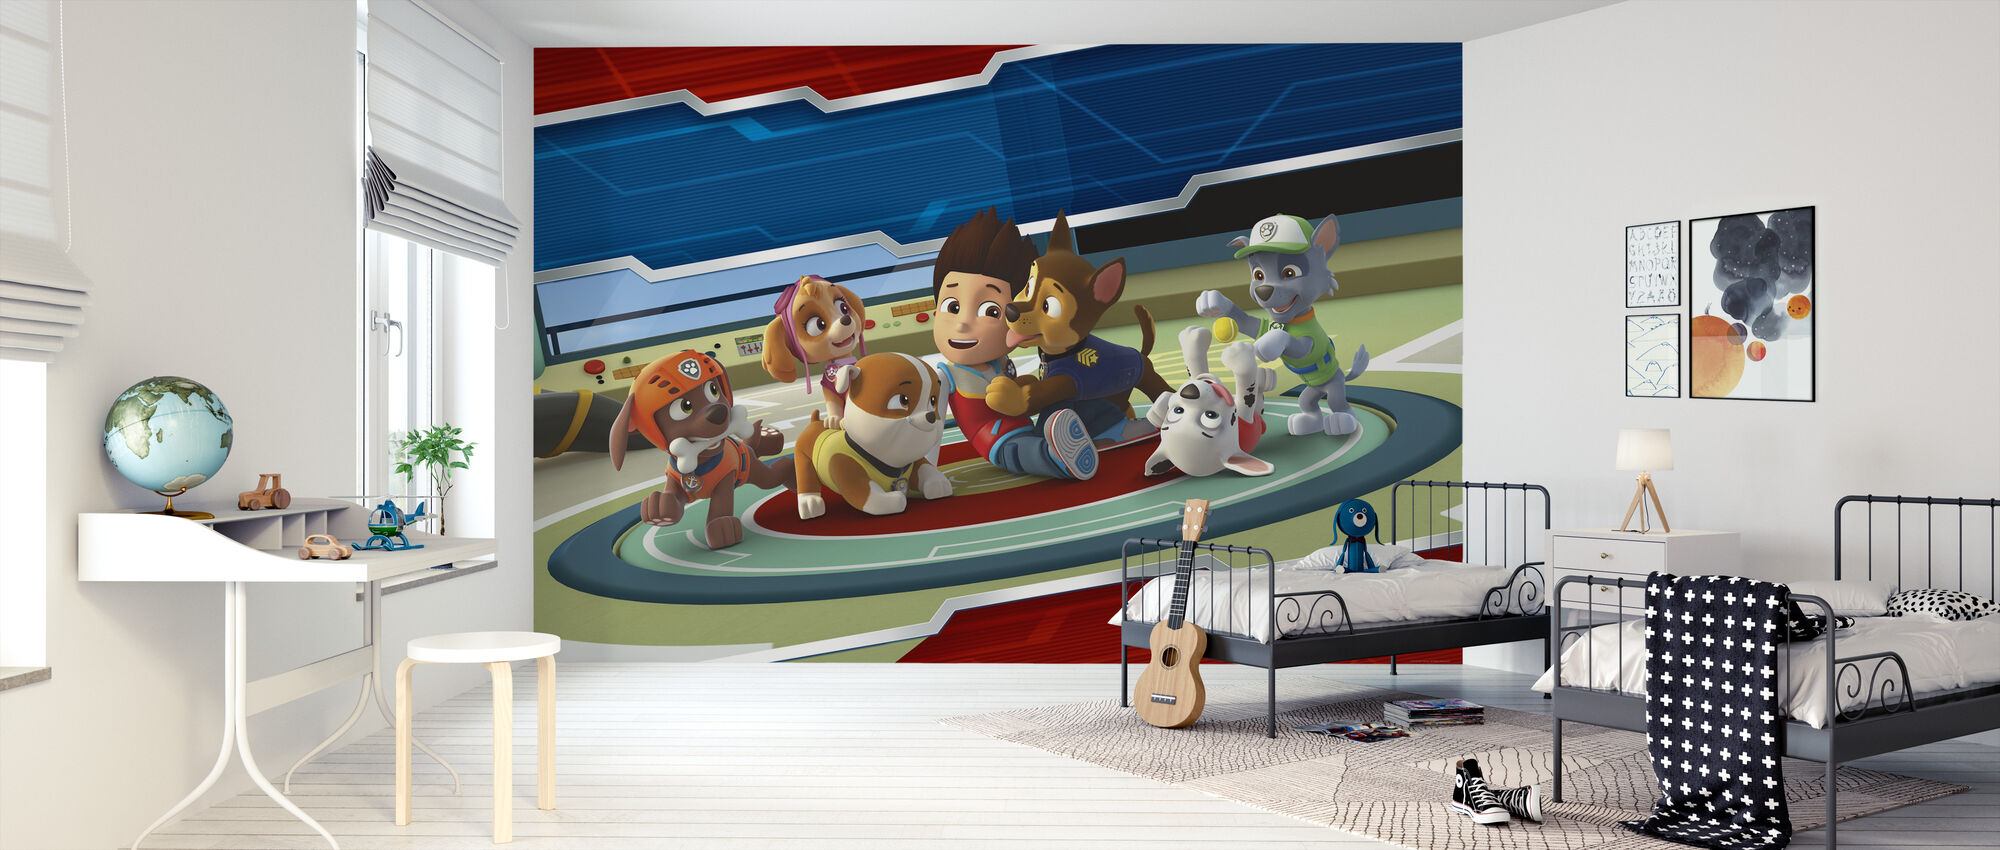 PAW Patrol - All Paws on Deck - Wallpaper - Kids Room